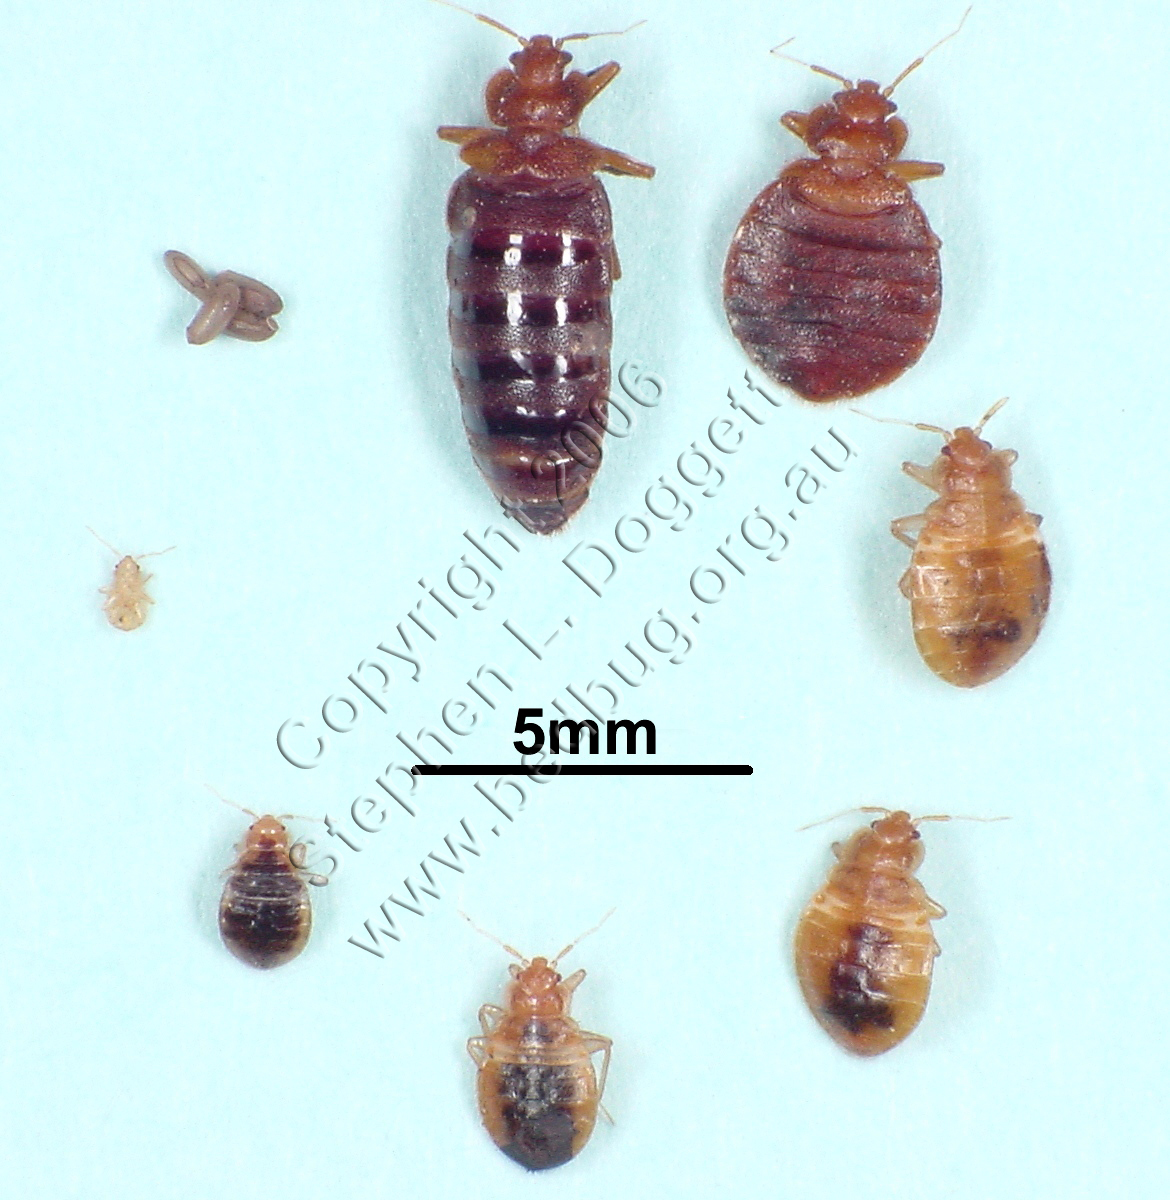 Bed bug first stage larvae - photo#16